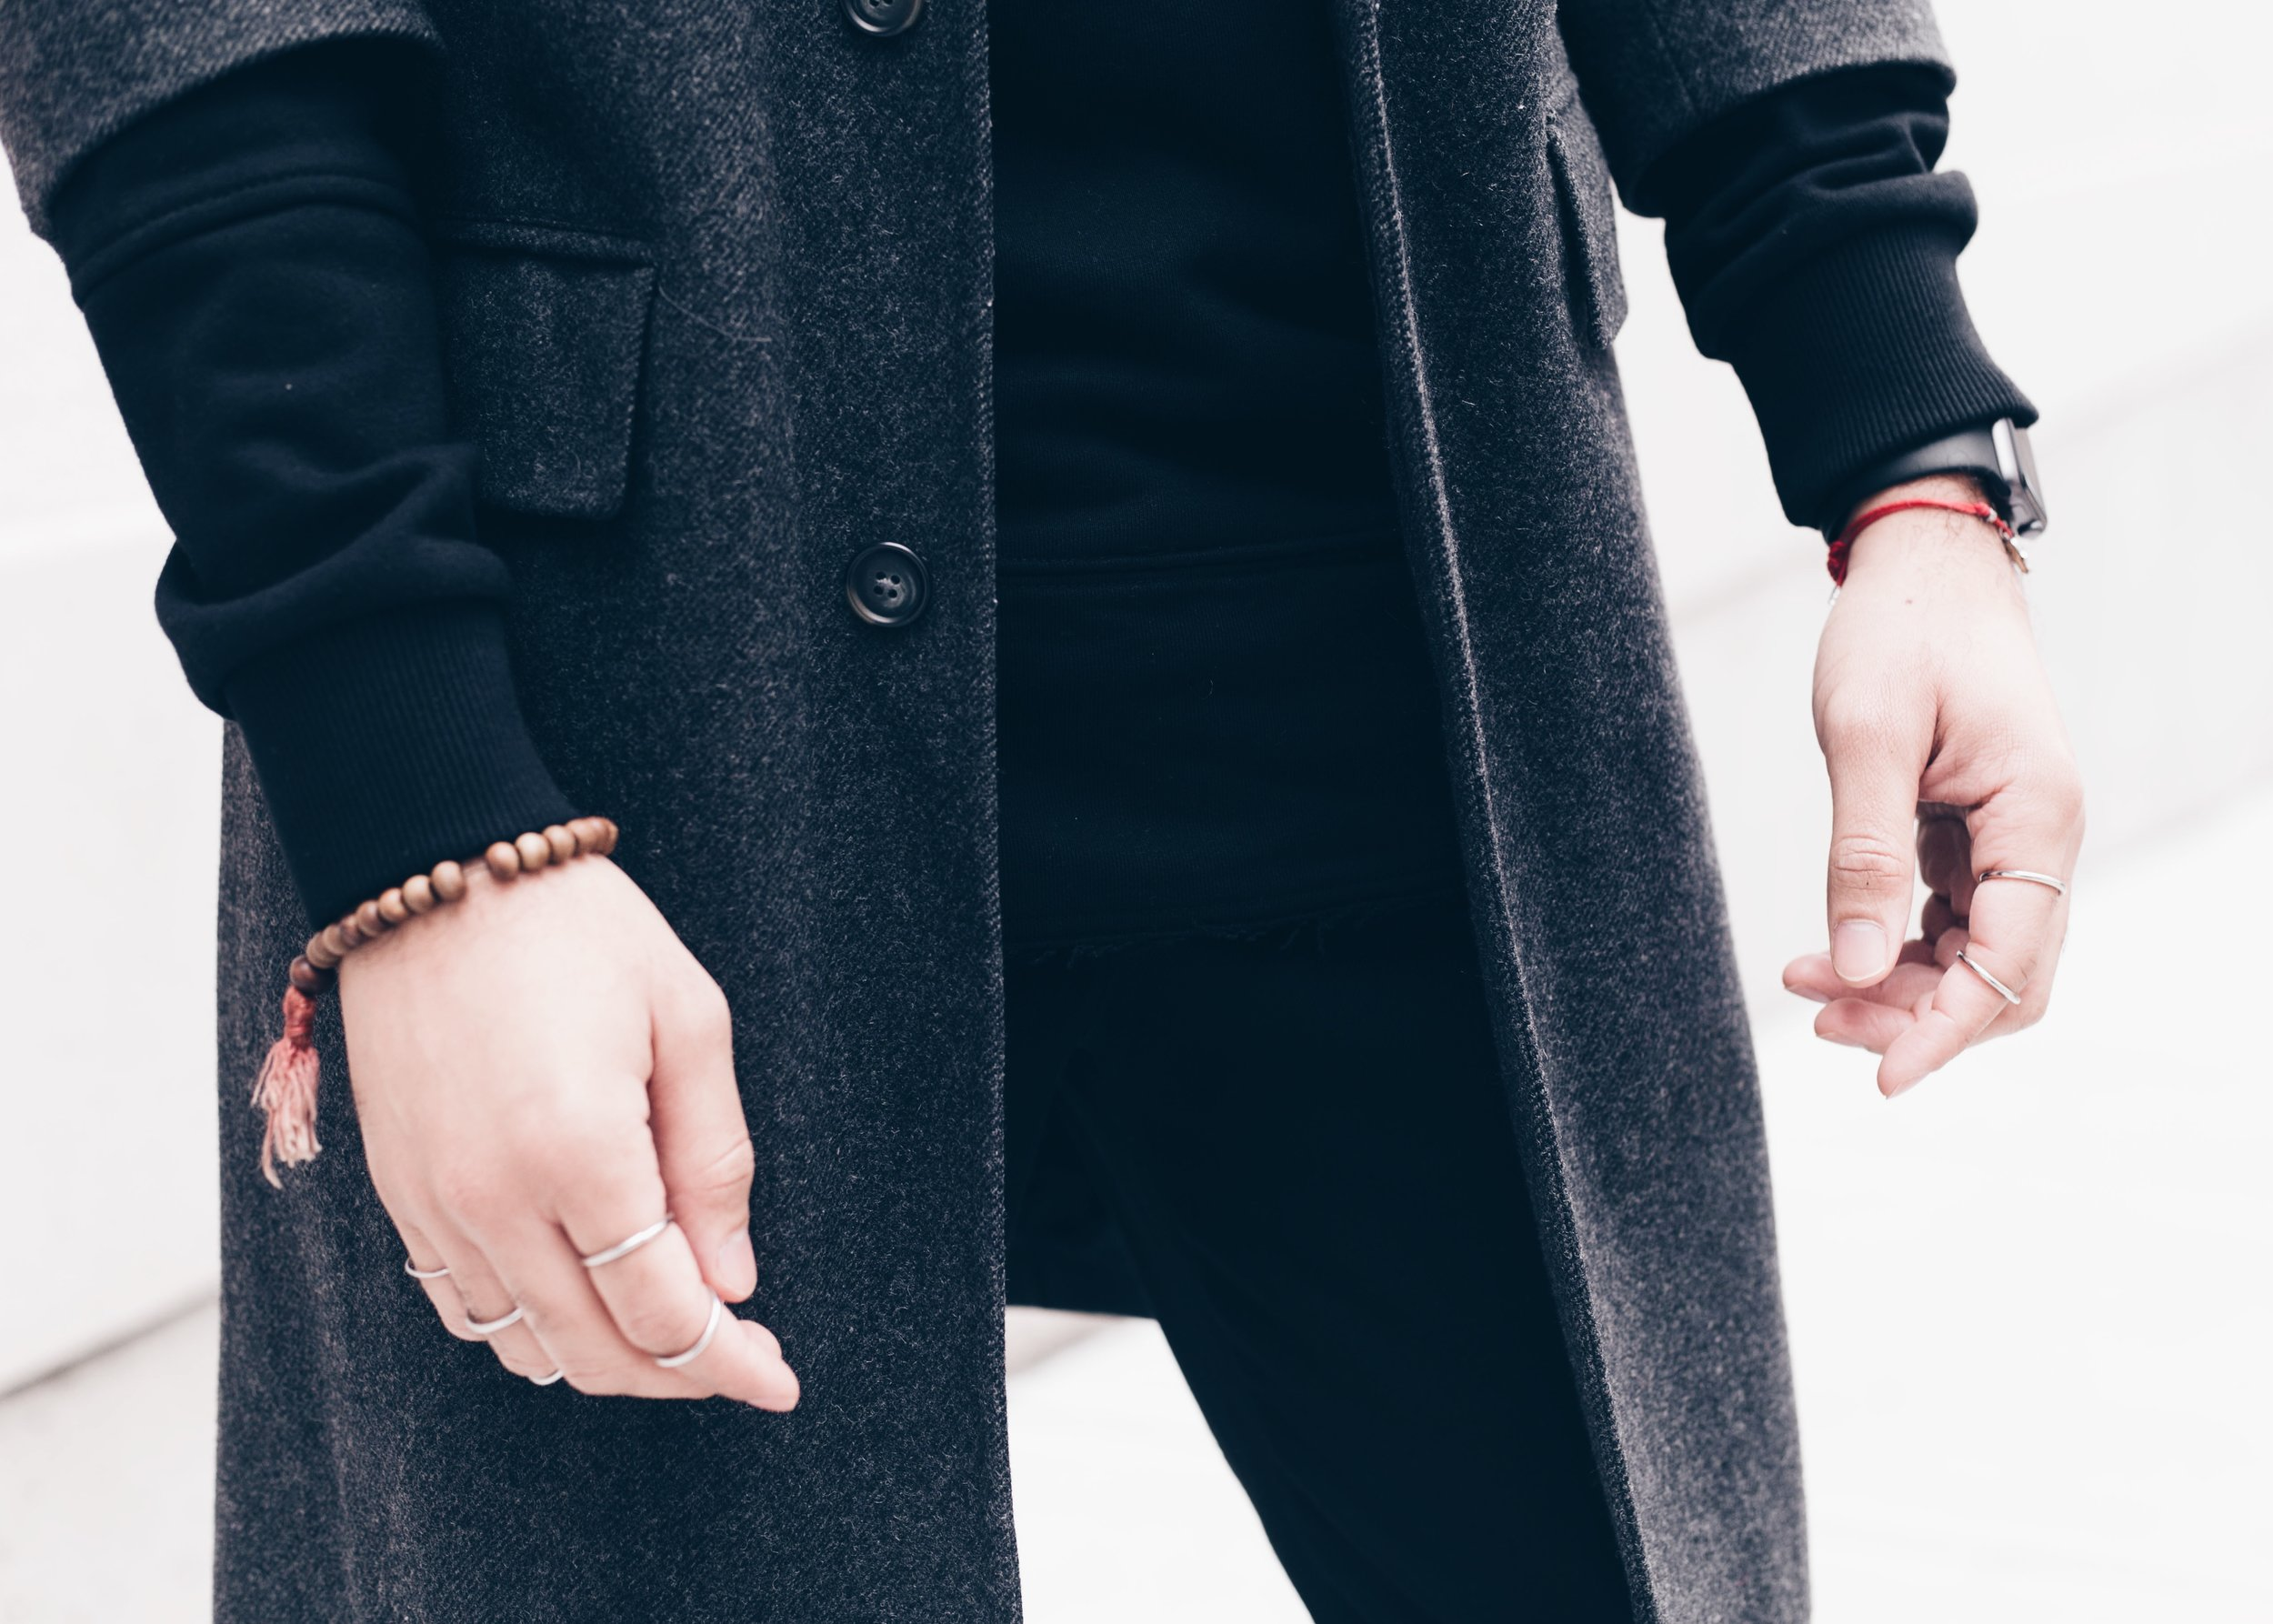 sam-c-perry-all-black-distressed-sweater-oversized-overcoat-details-zoom.jpg